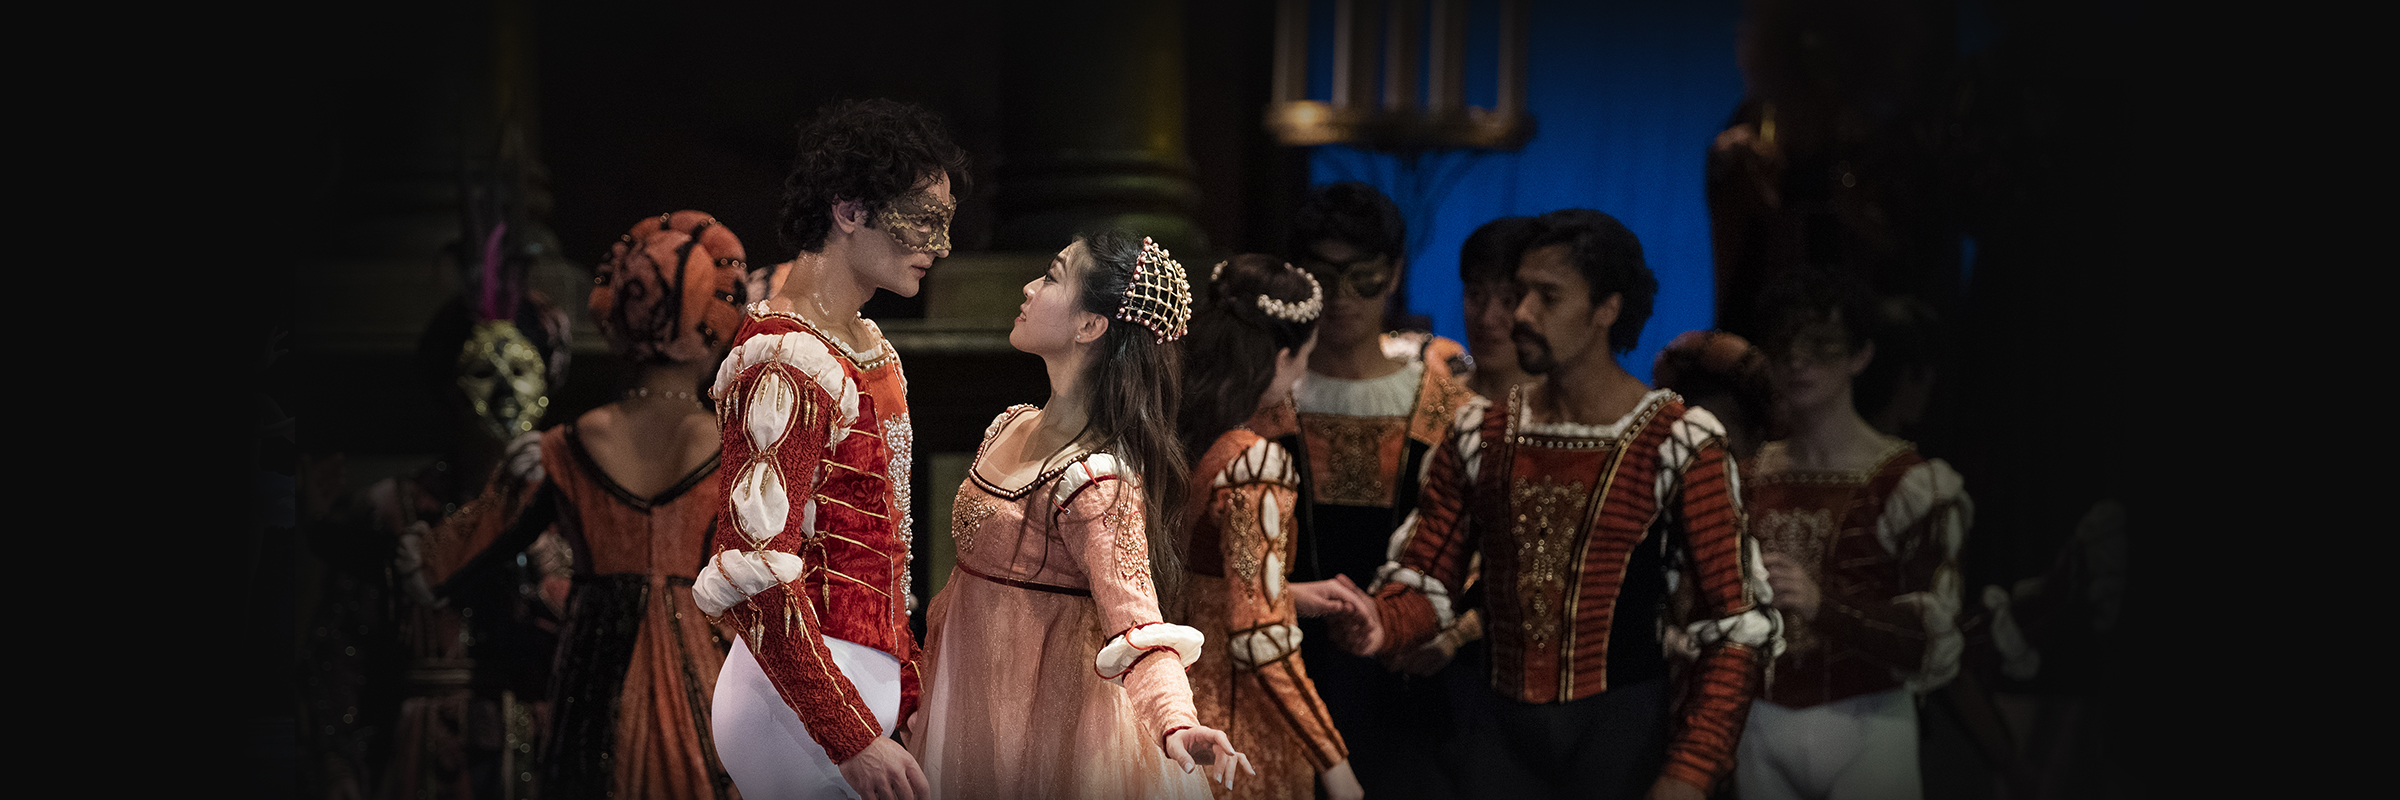 Misa Kuranaga and Angelo Greco in Tomasson's Romeo & Juliet